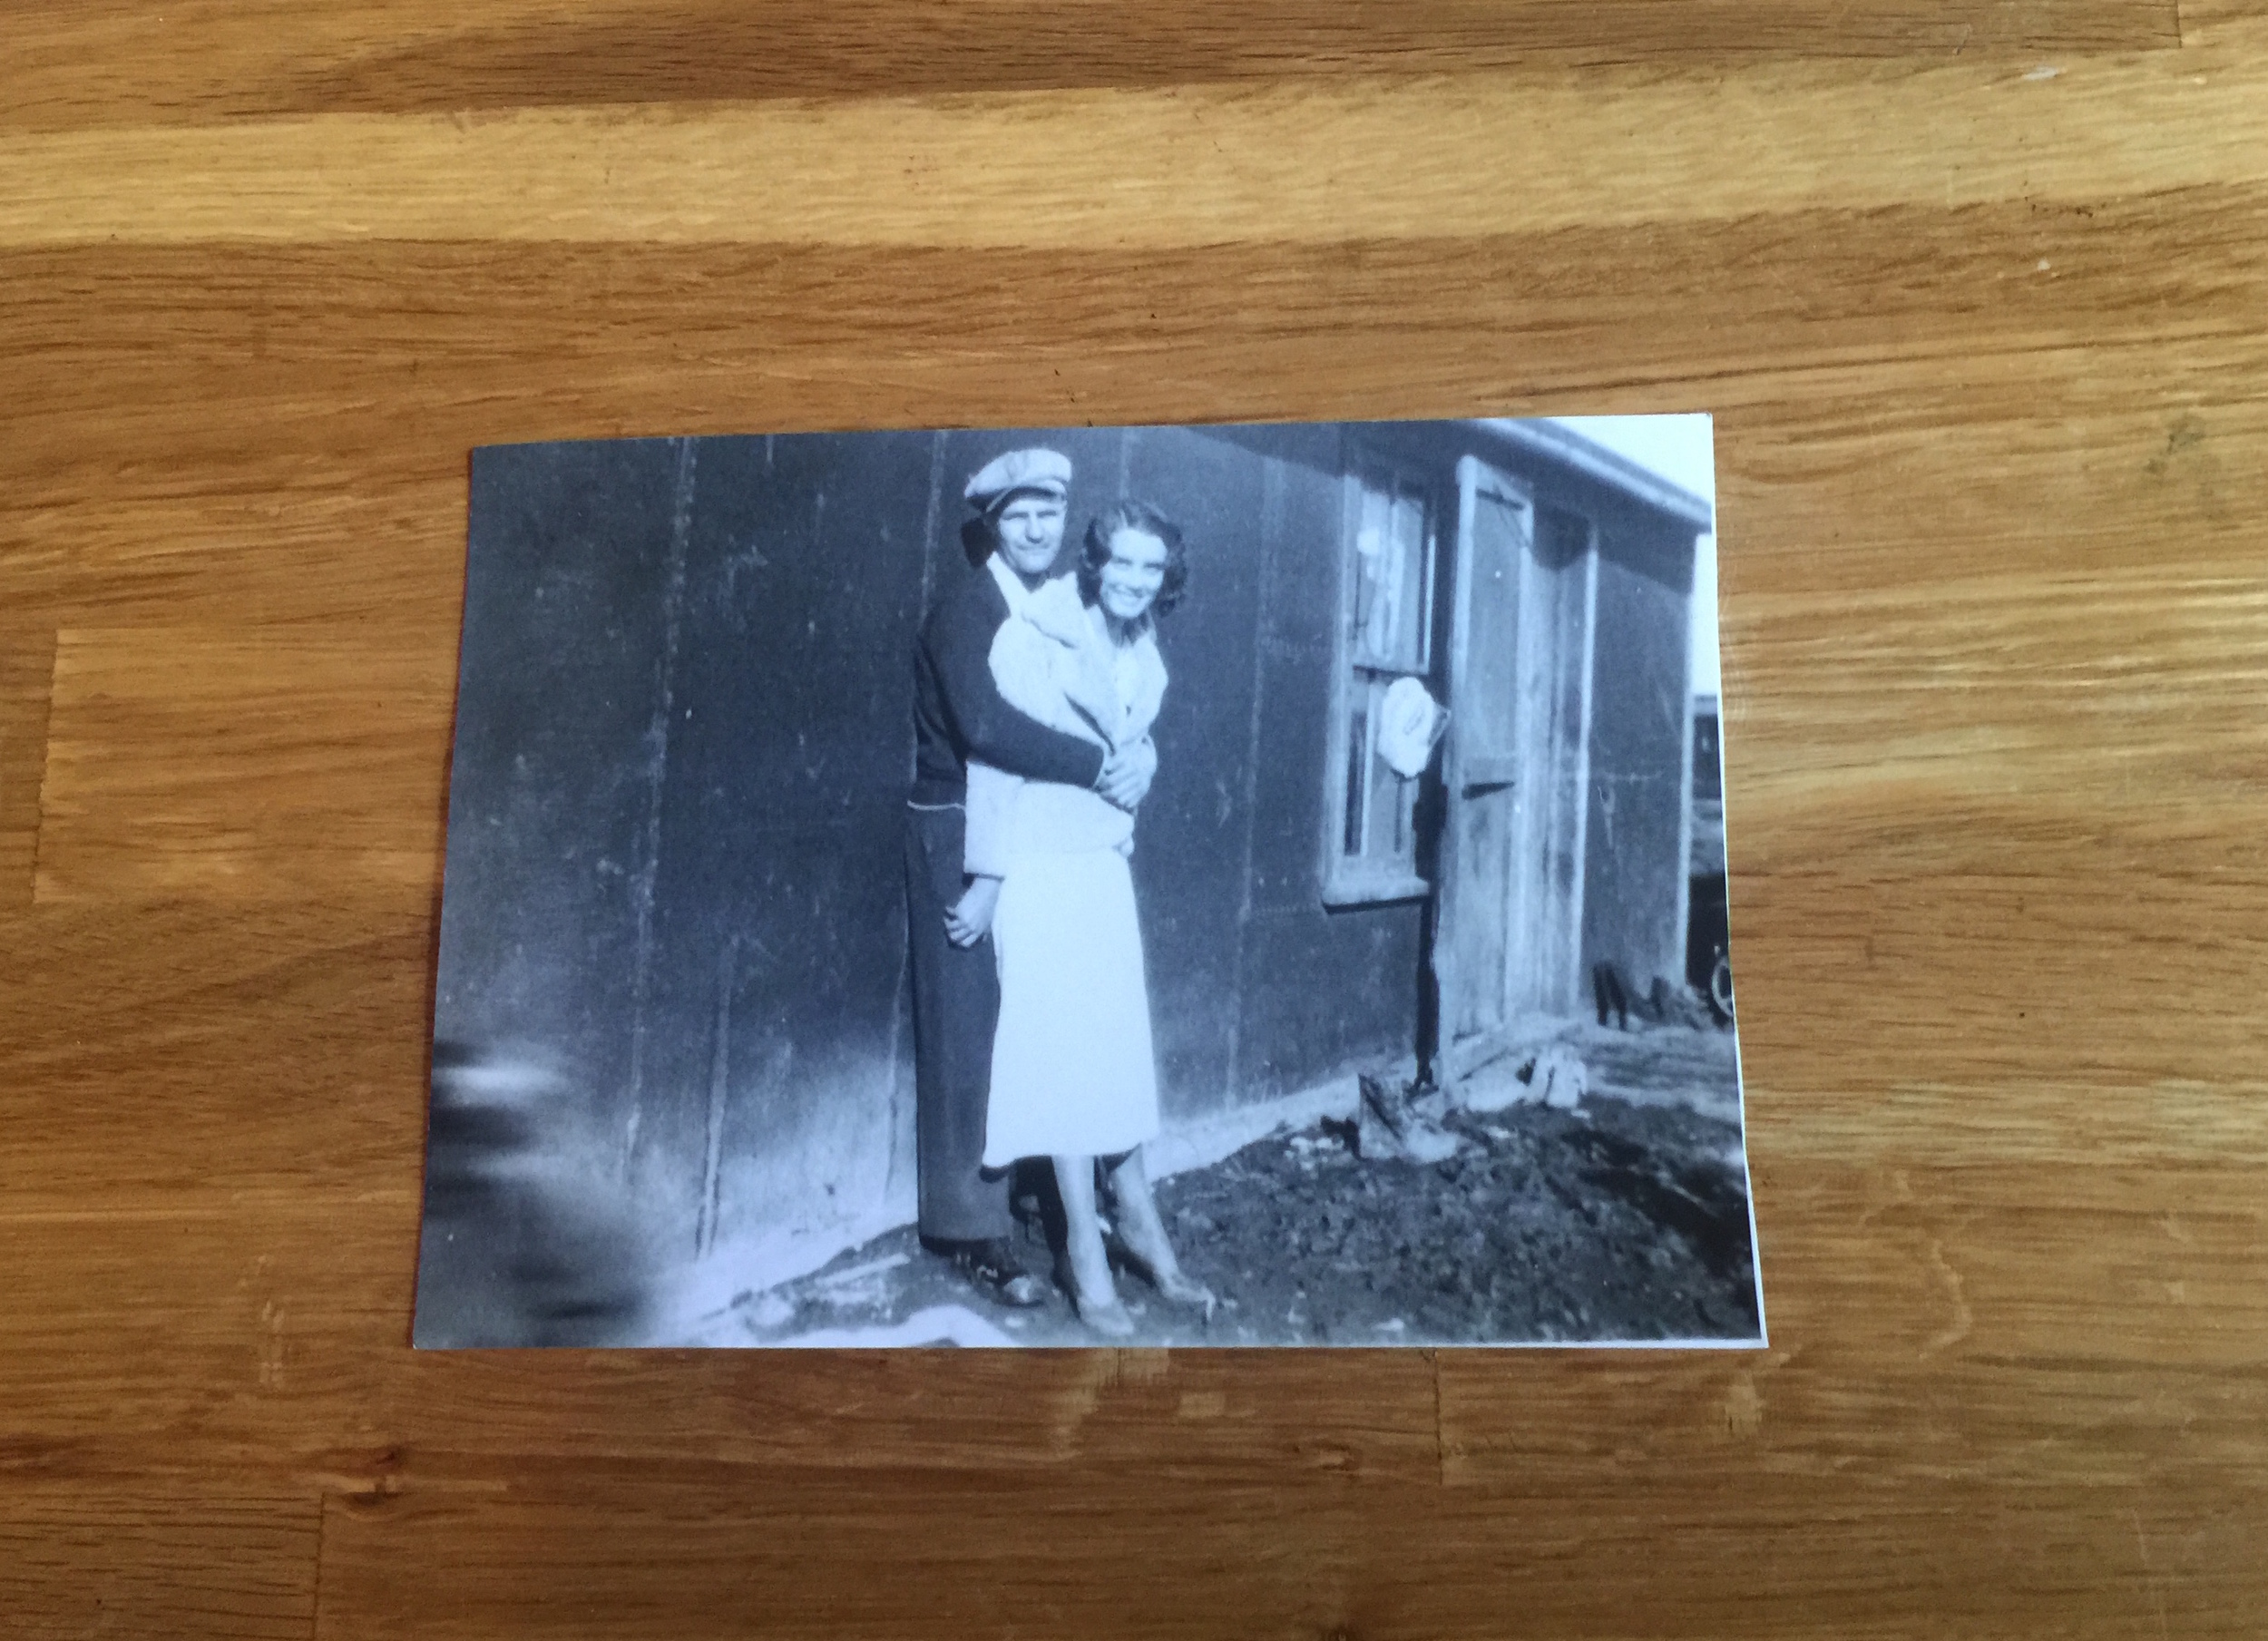 Young and poor, Zelma and Joe donned their fanciest outfits for their 1930s wedding in South Dakota.    memory prompt : When were you particularly resourceful, responding to difficult circumstances with aplomb?